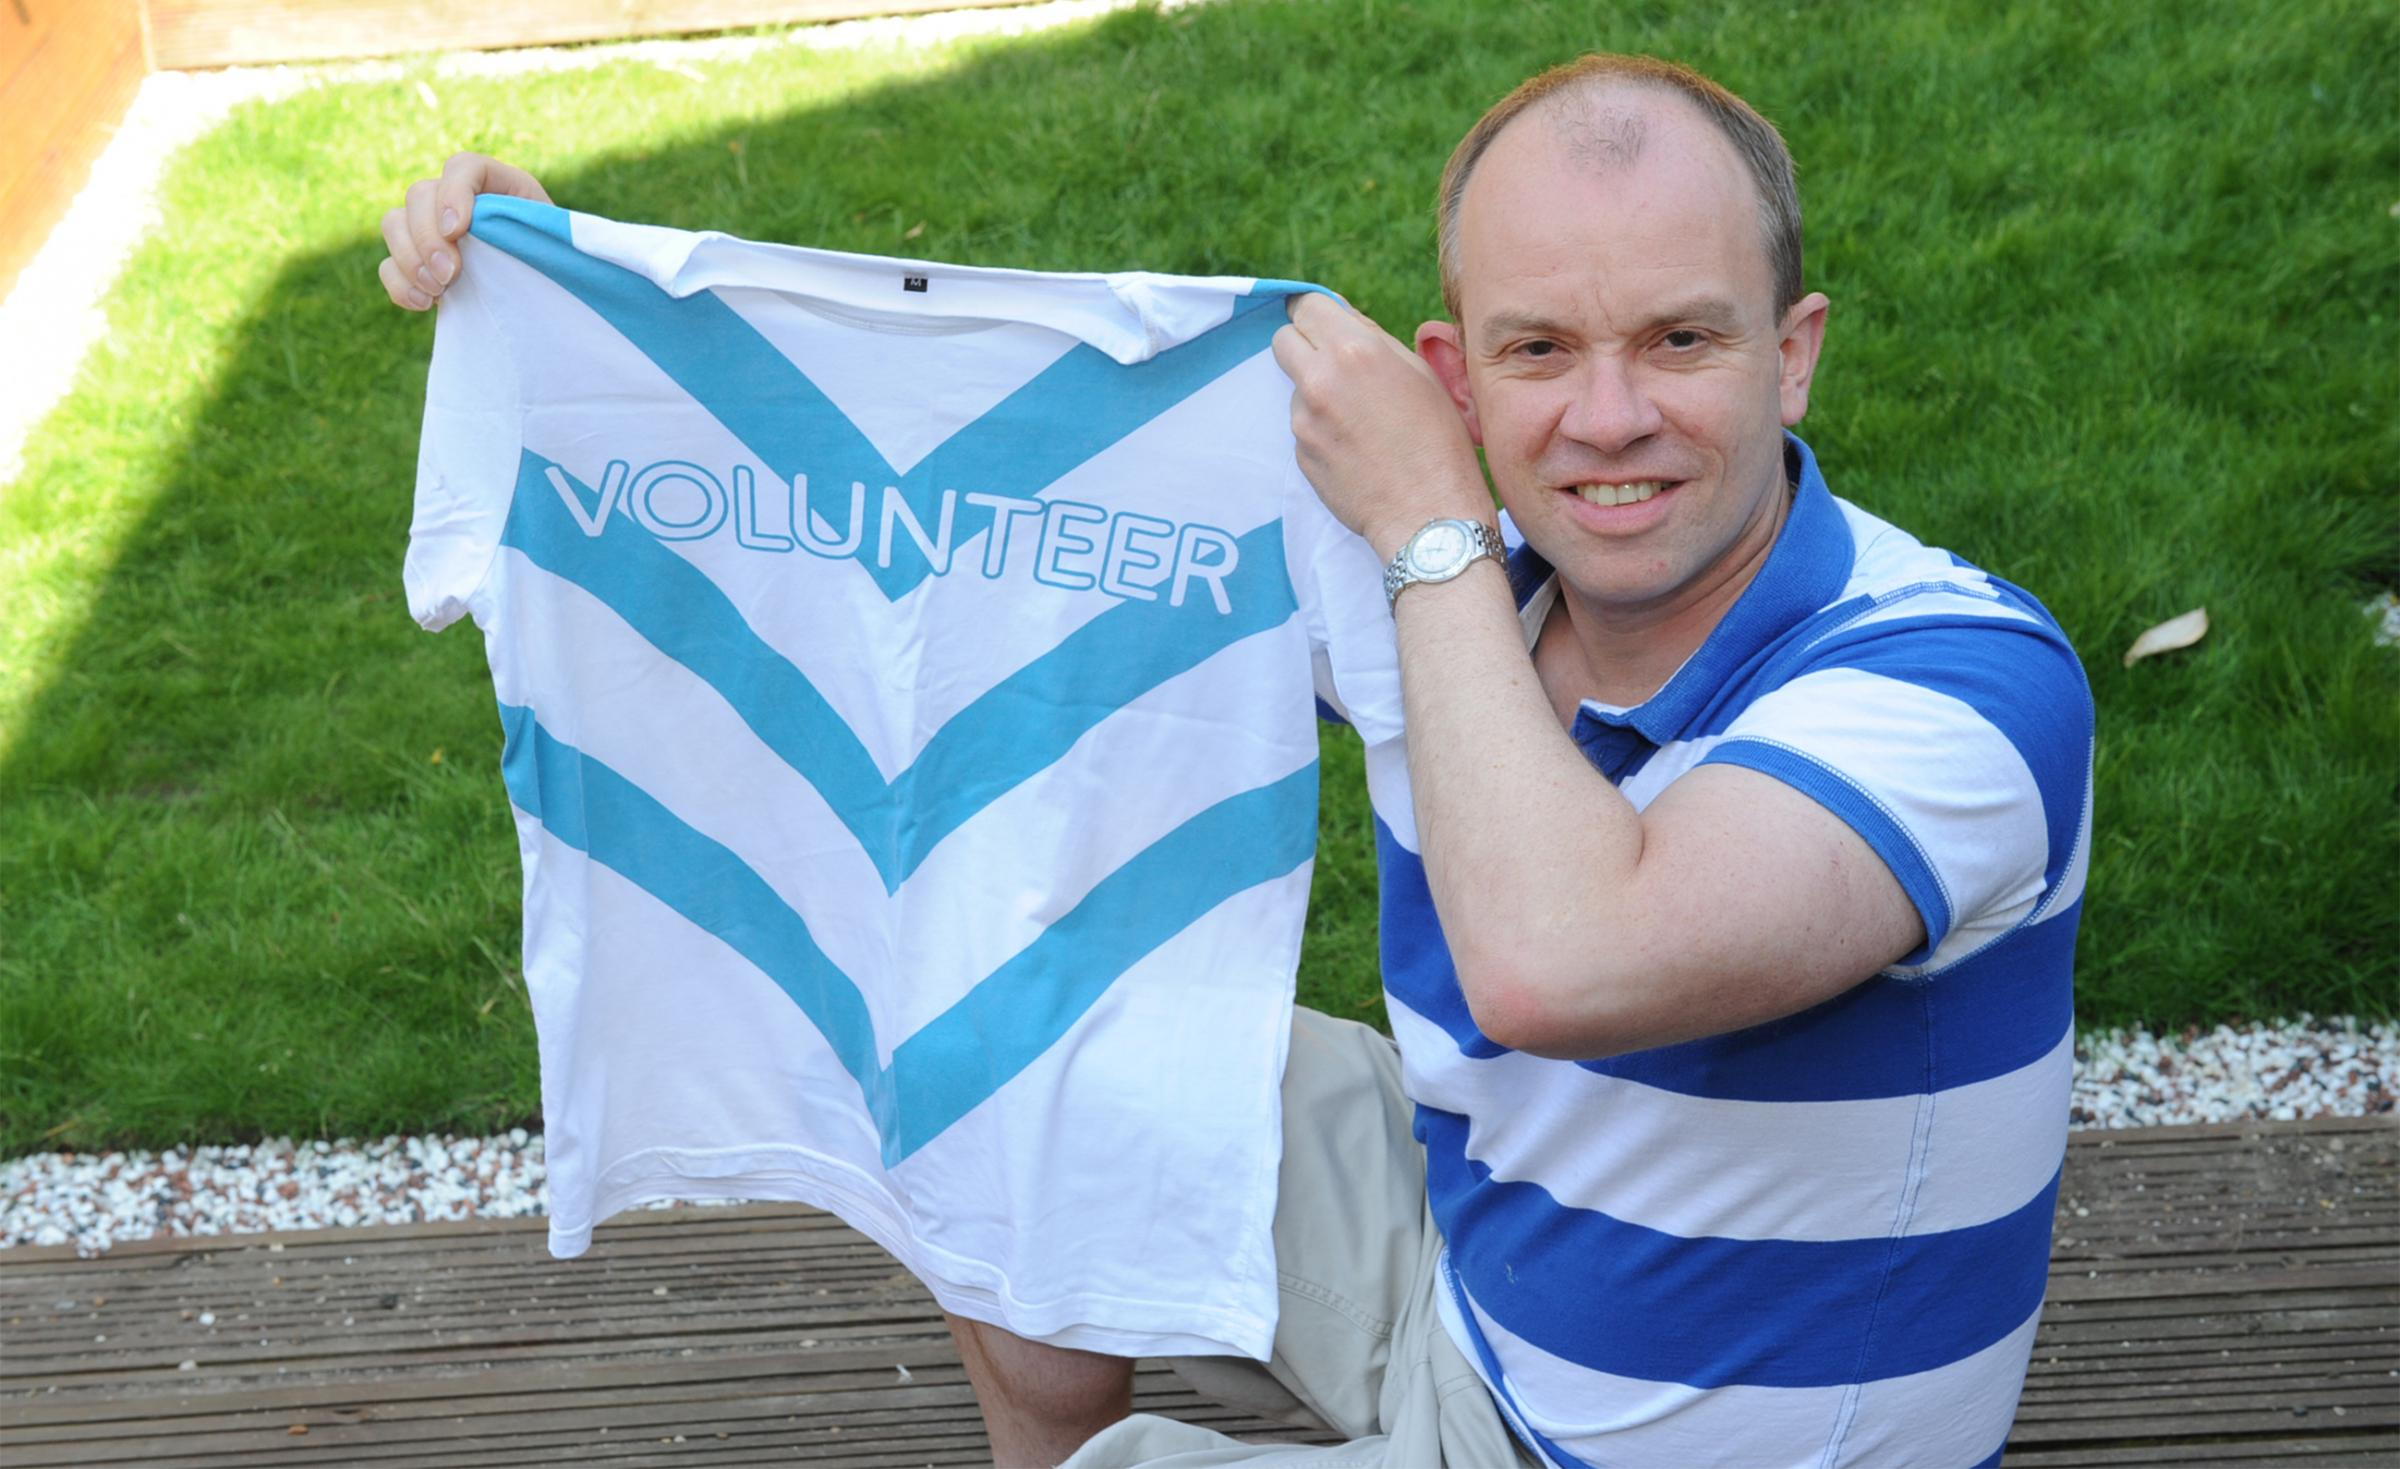 Duncan Whitehead wants others to volunteer